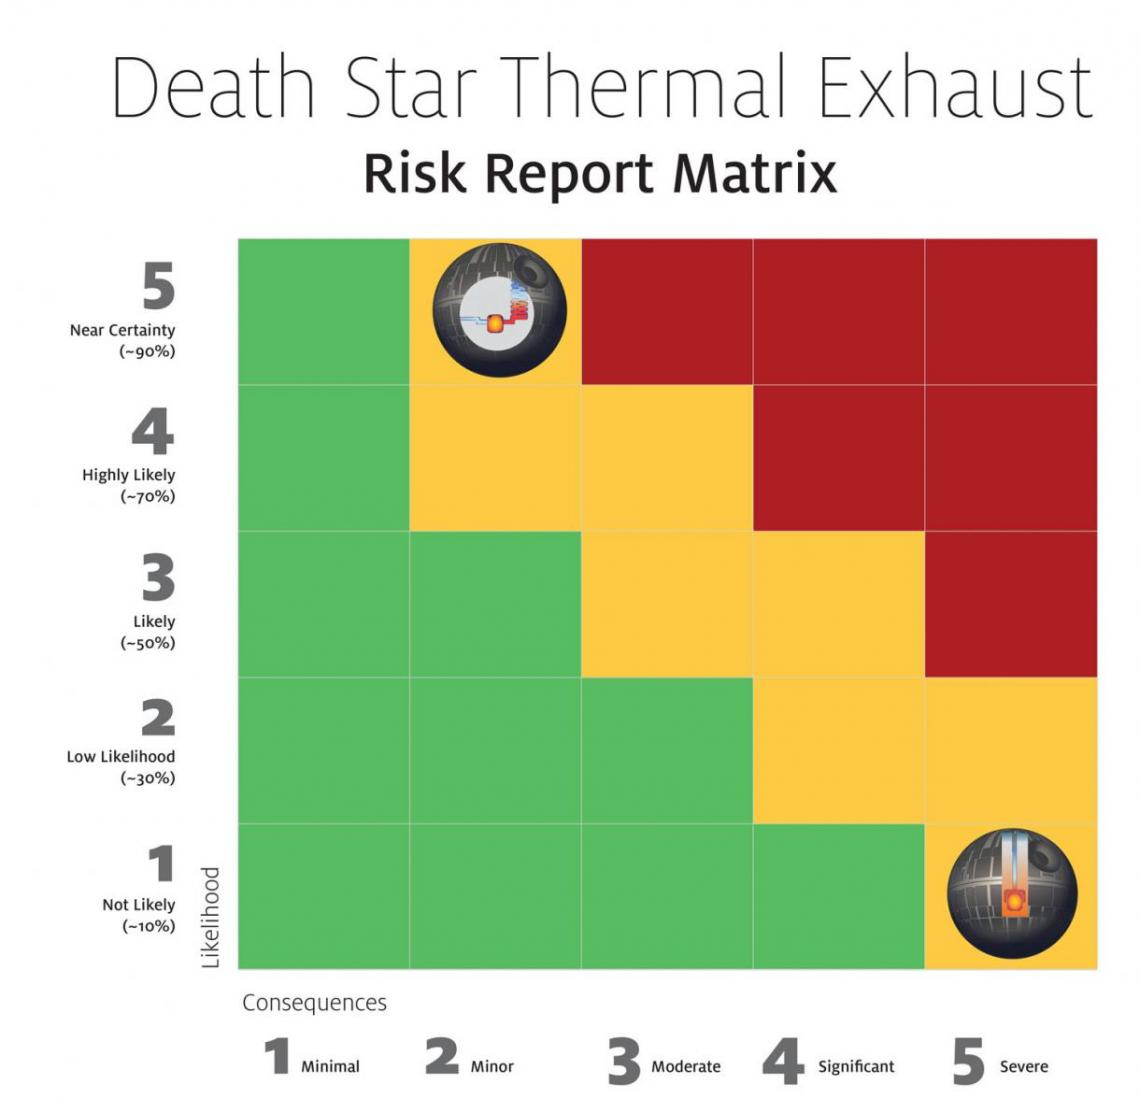 Risk report matrix of the Death Star thermal exhaust port design. A 5x5 grid shows the likelihood of an attack and the potential severity of consequences if an attack occurs.